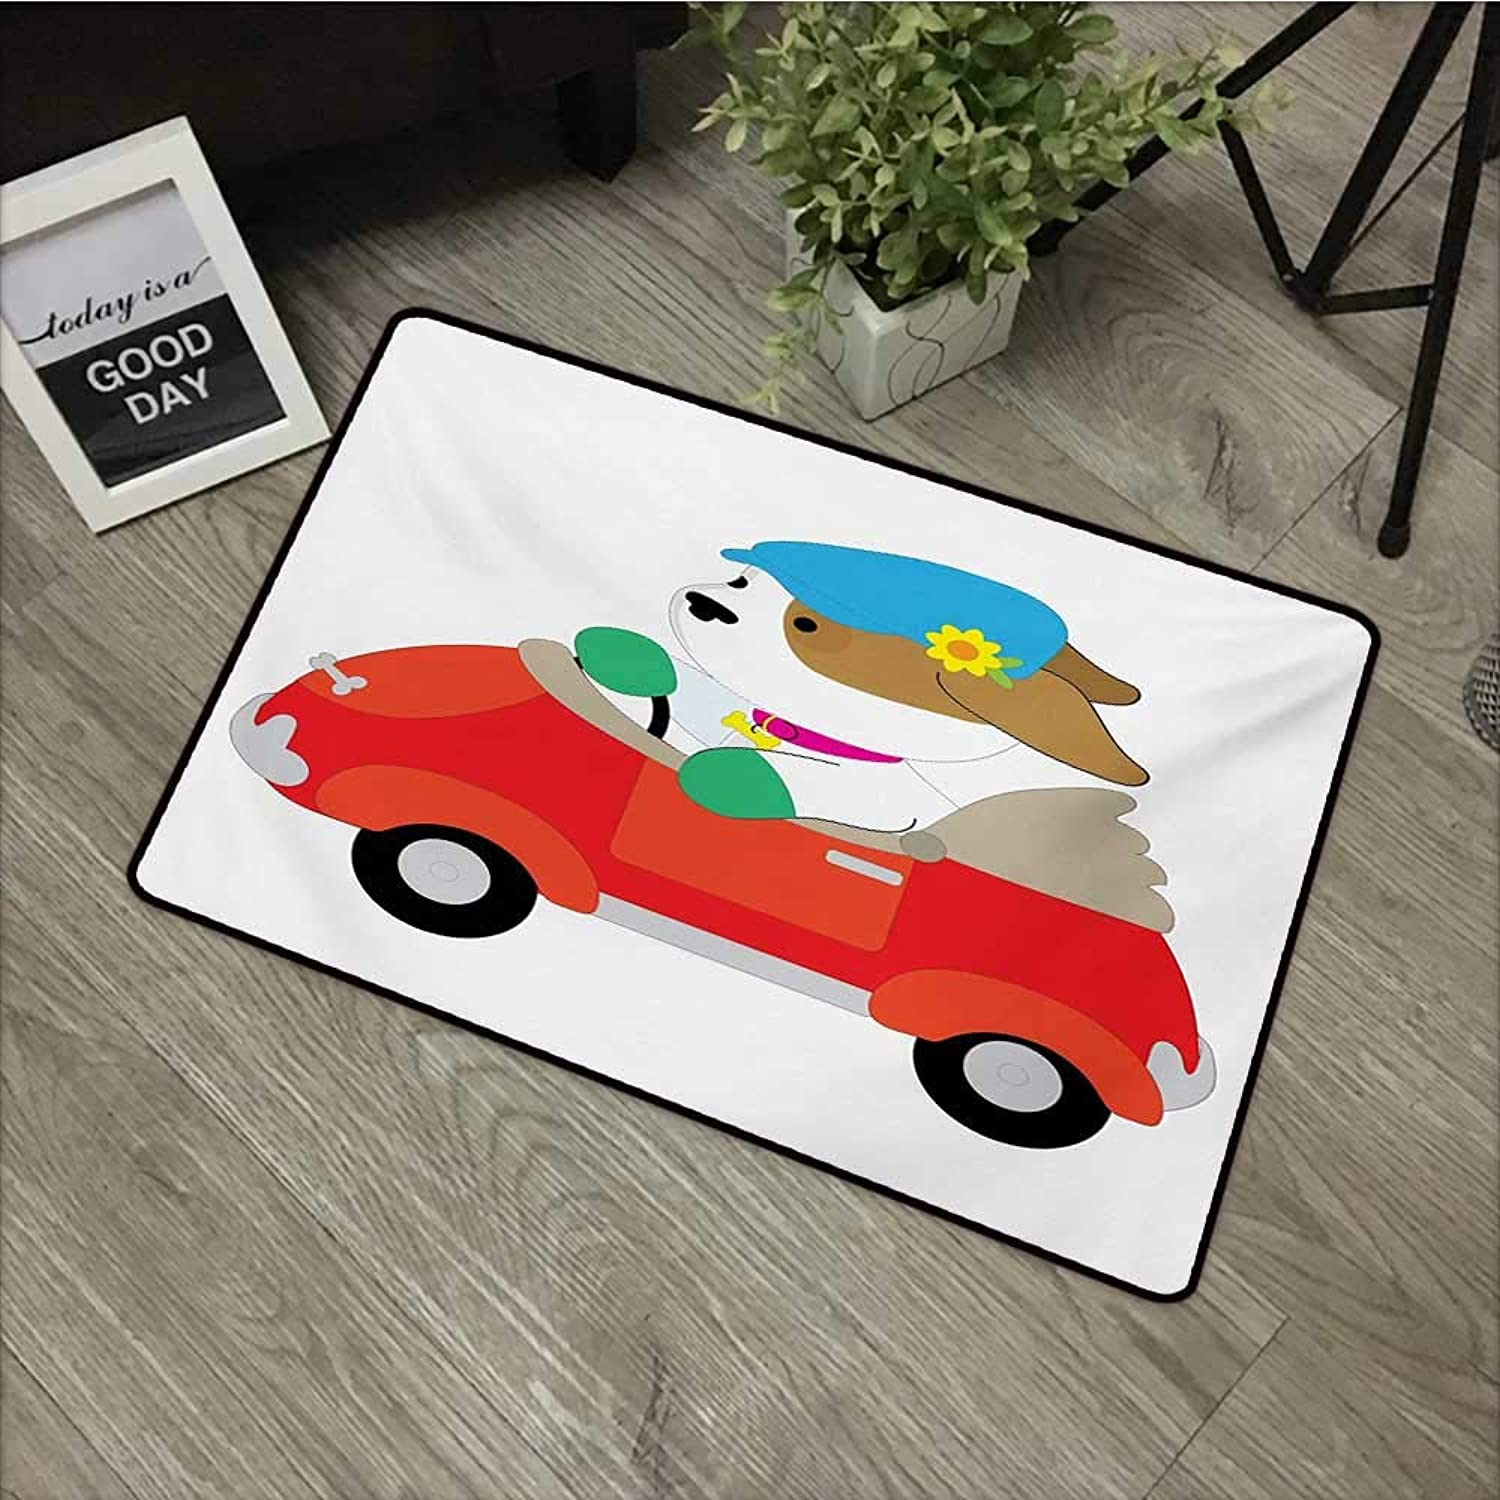 Pad W35 x L59 INCH Dog Driver,Puppy Wearing A Driving Cap with Flower in Car Companion Humor Joke Cartoon,Multicolor Non-Slip, with Non-Slip Backing,Non-Slip Door Mat Carpet